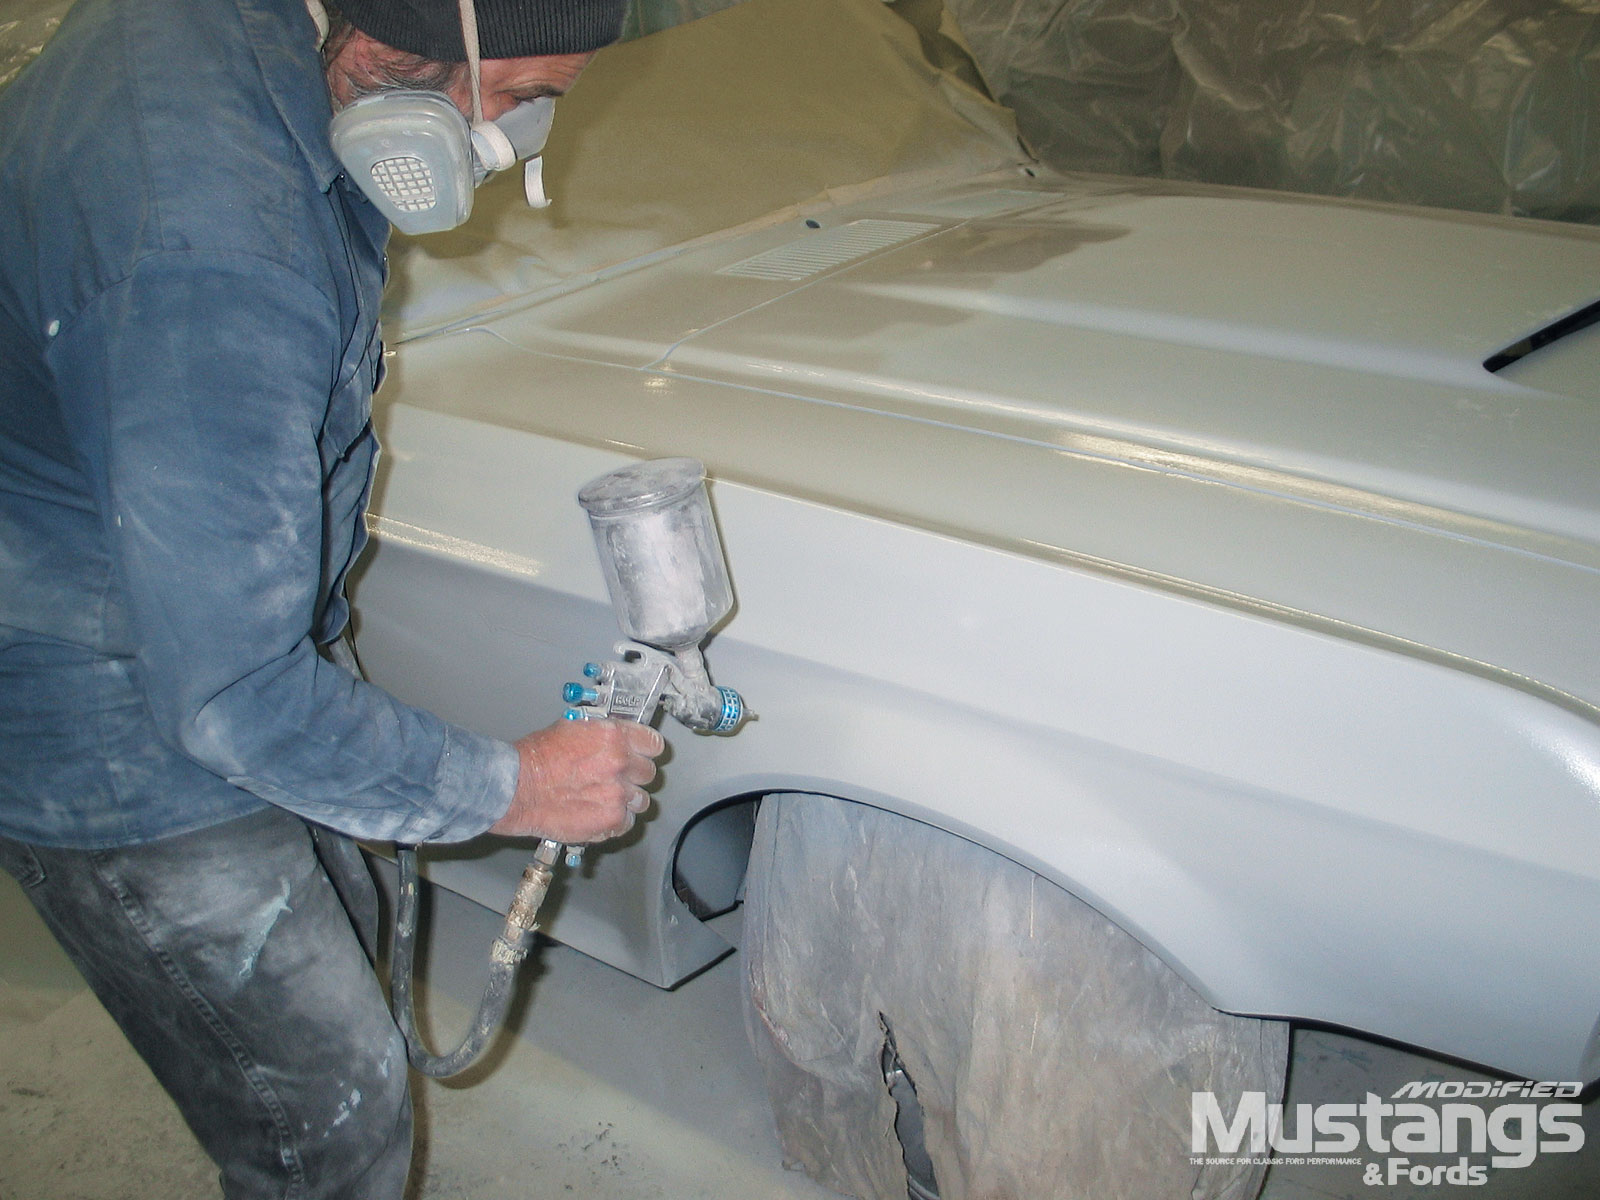 Project Generation Gap 1968 Ford Mustang Fastback Front End Body Prep Primer Spray